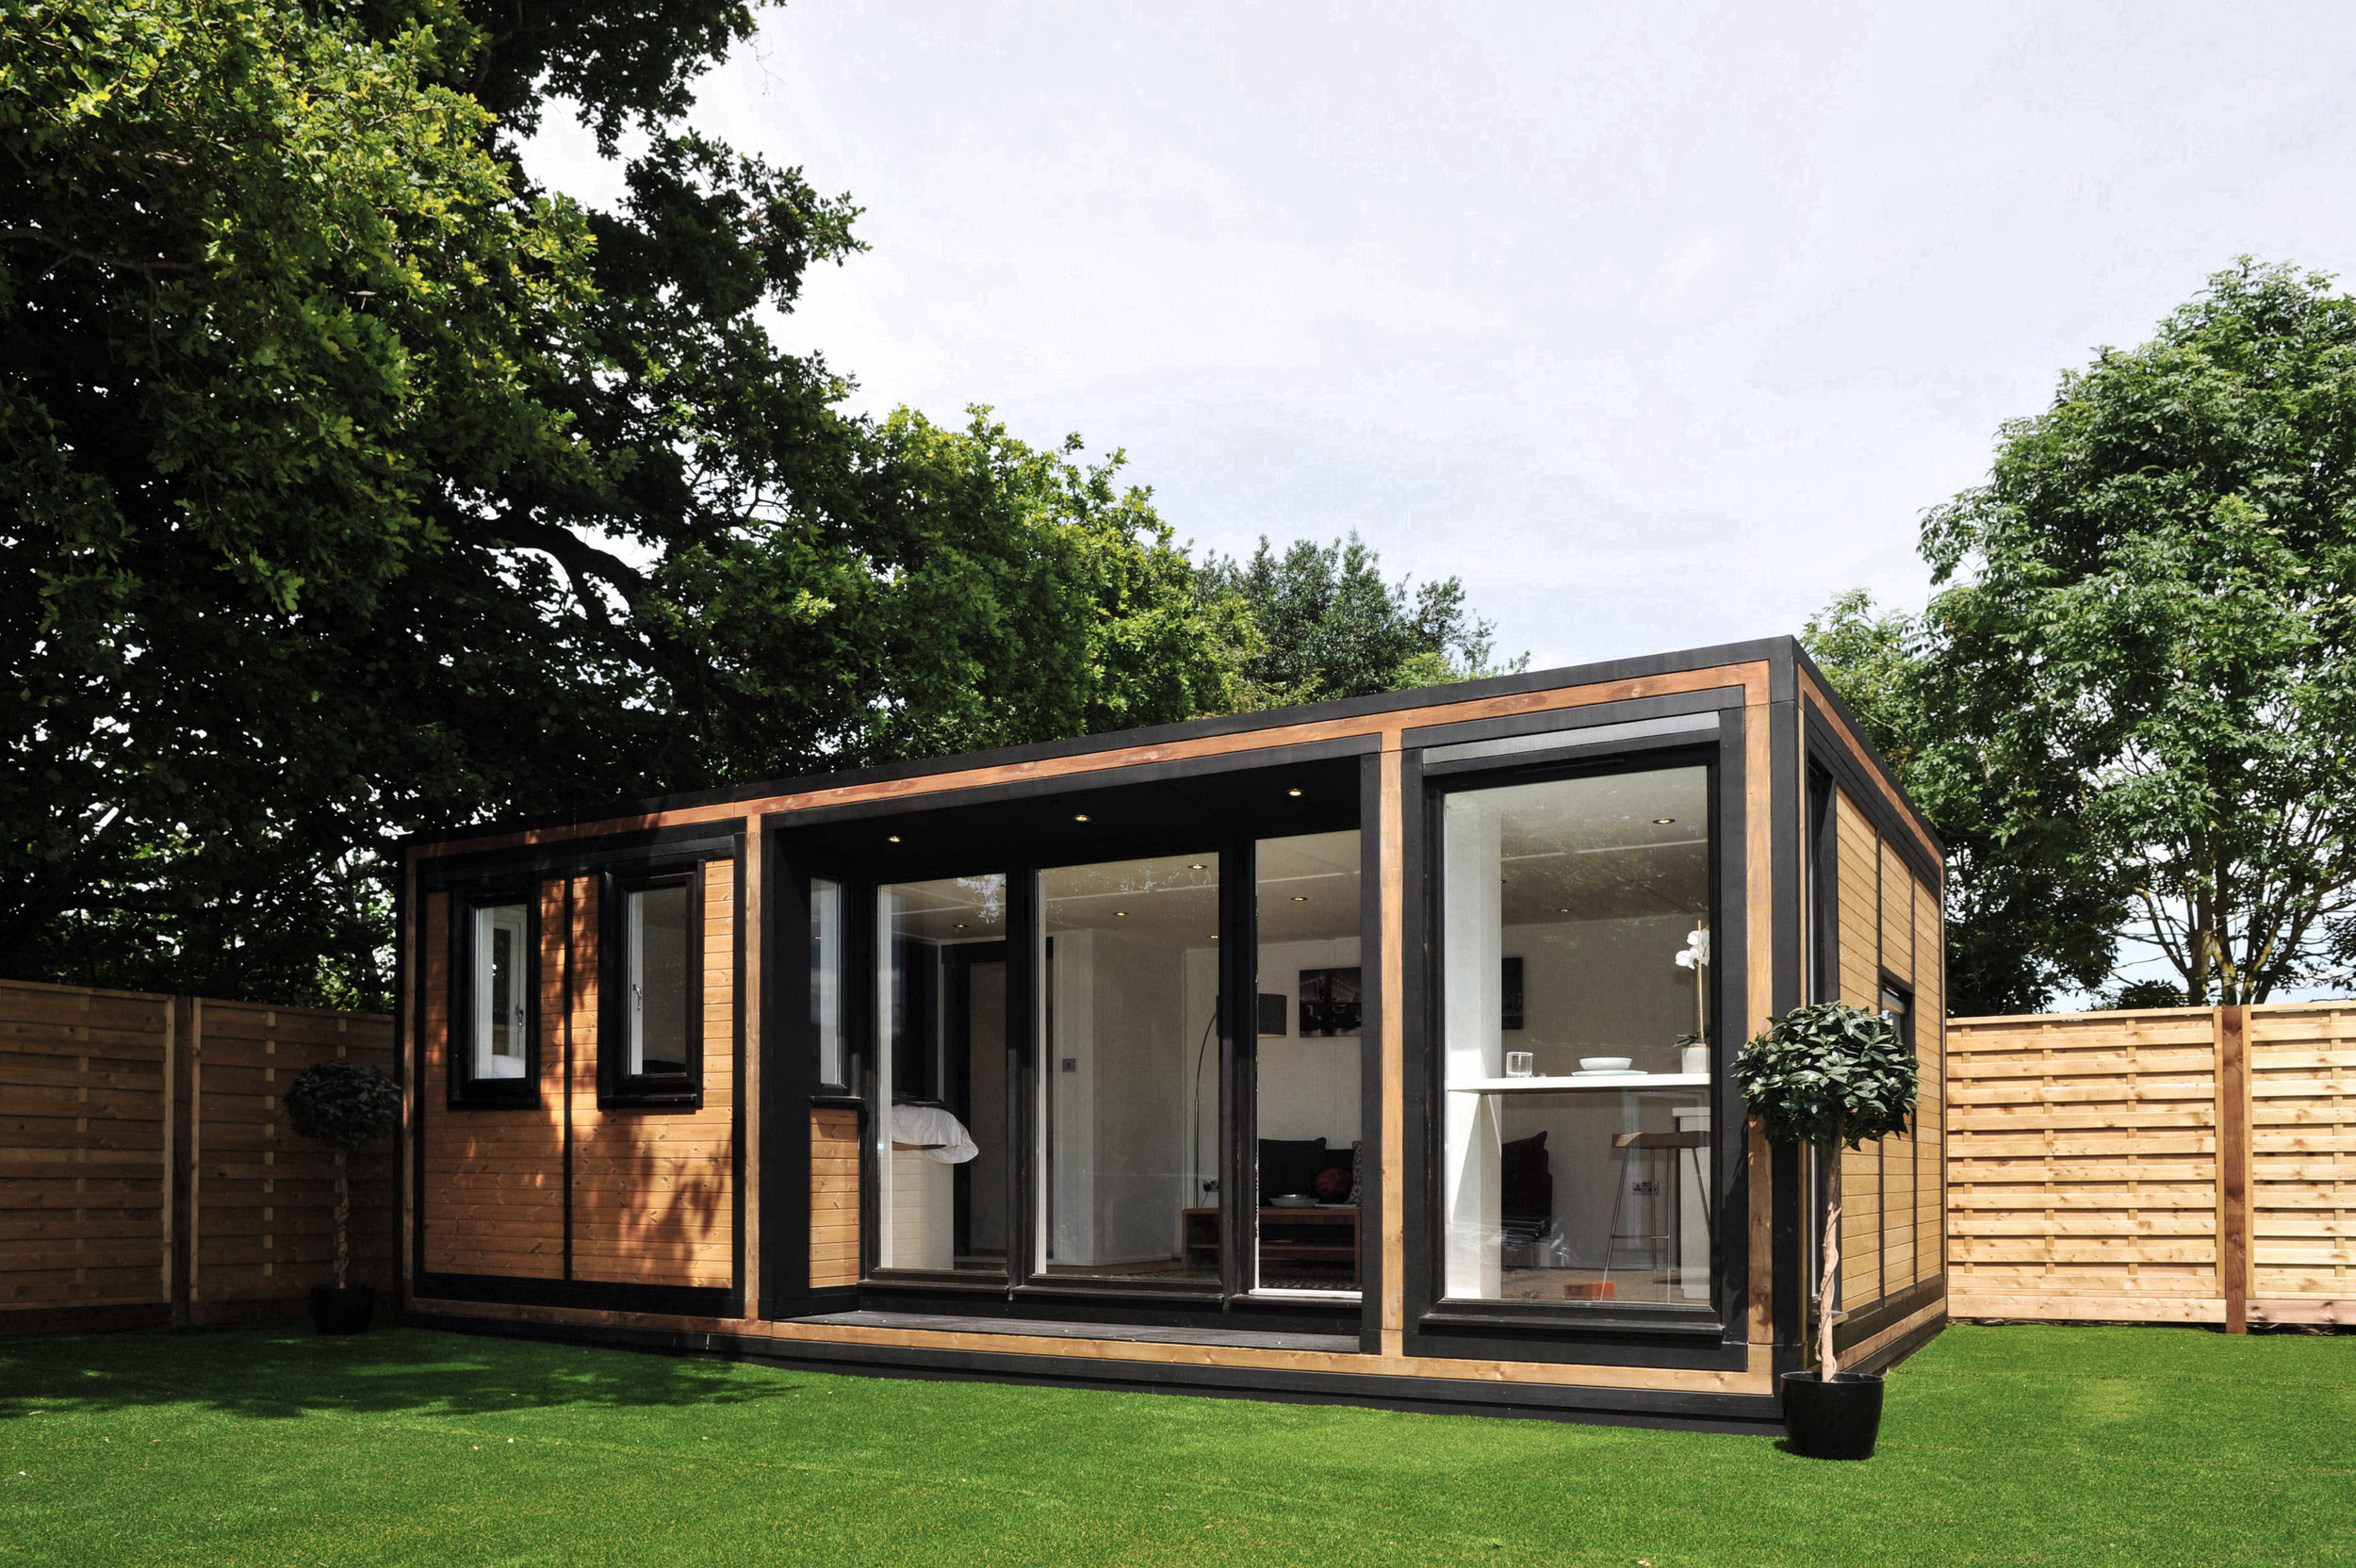 ZEDBOX 635  (6 x 3.5)  Internal Size: 6401 x 3791  External Size: 6871 x 4261  Bed Options: Single or Double  Kitchen Options: Micro Kitchen or Kitchen  Wet Room Options: Yes  Portico: Yes  Price:  £32,000    Optional Extras    Request Zedbox Catalogue